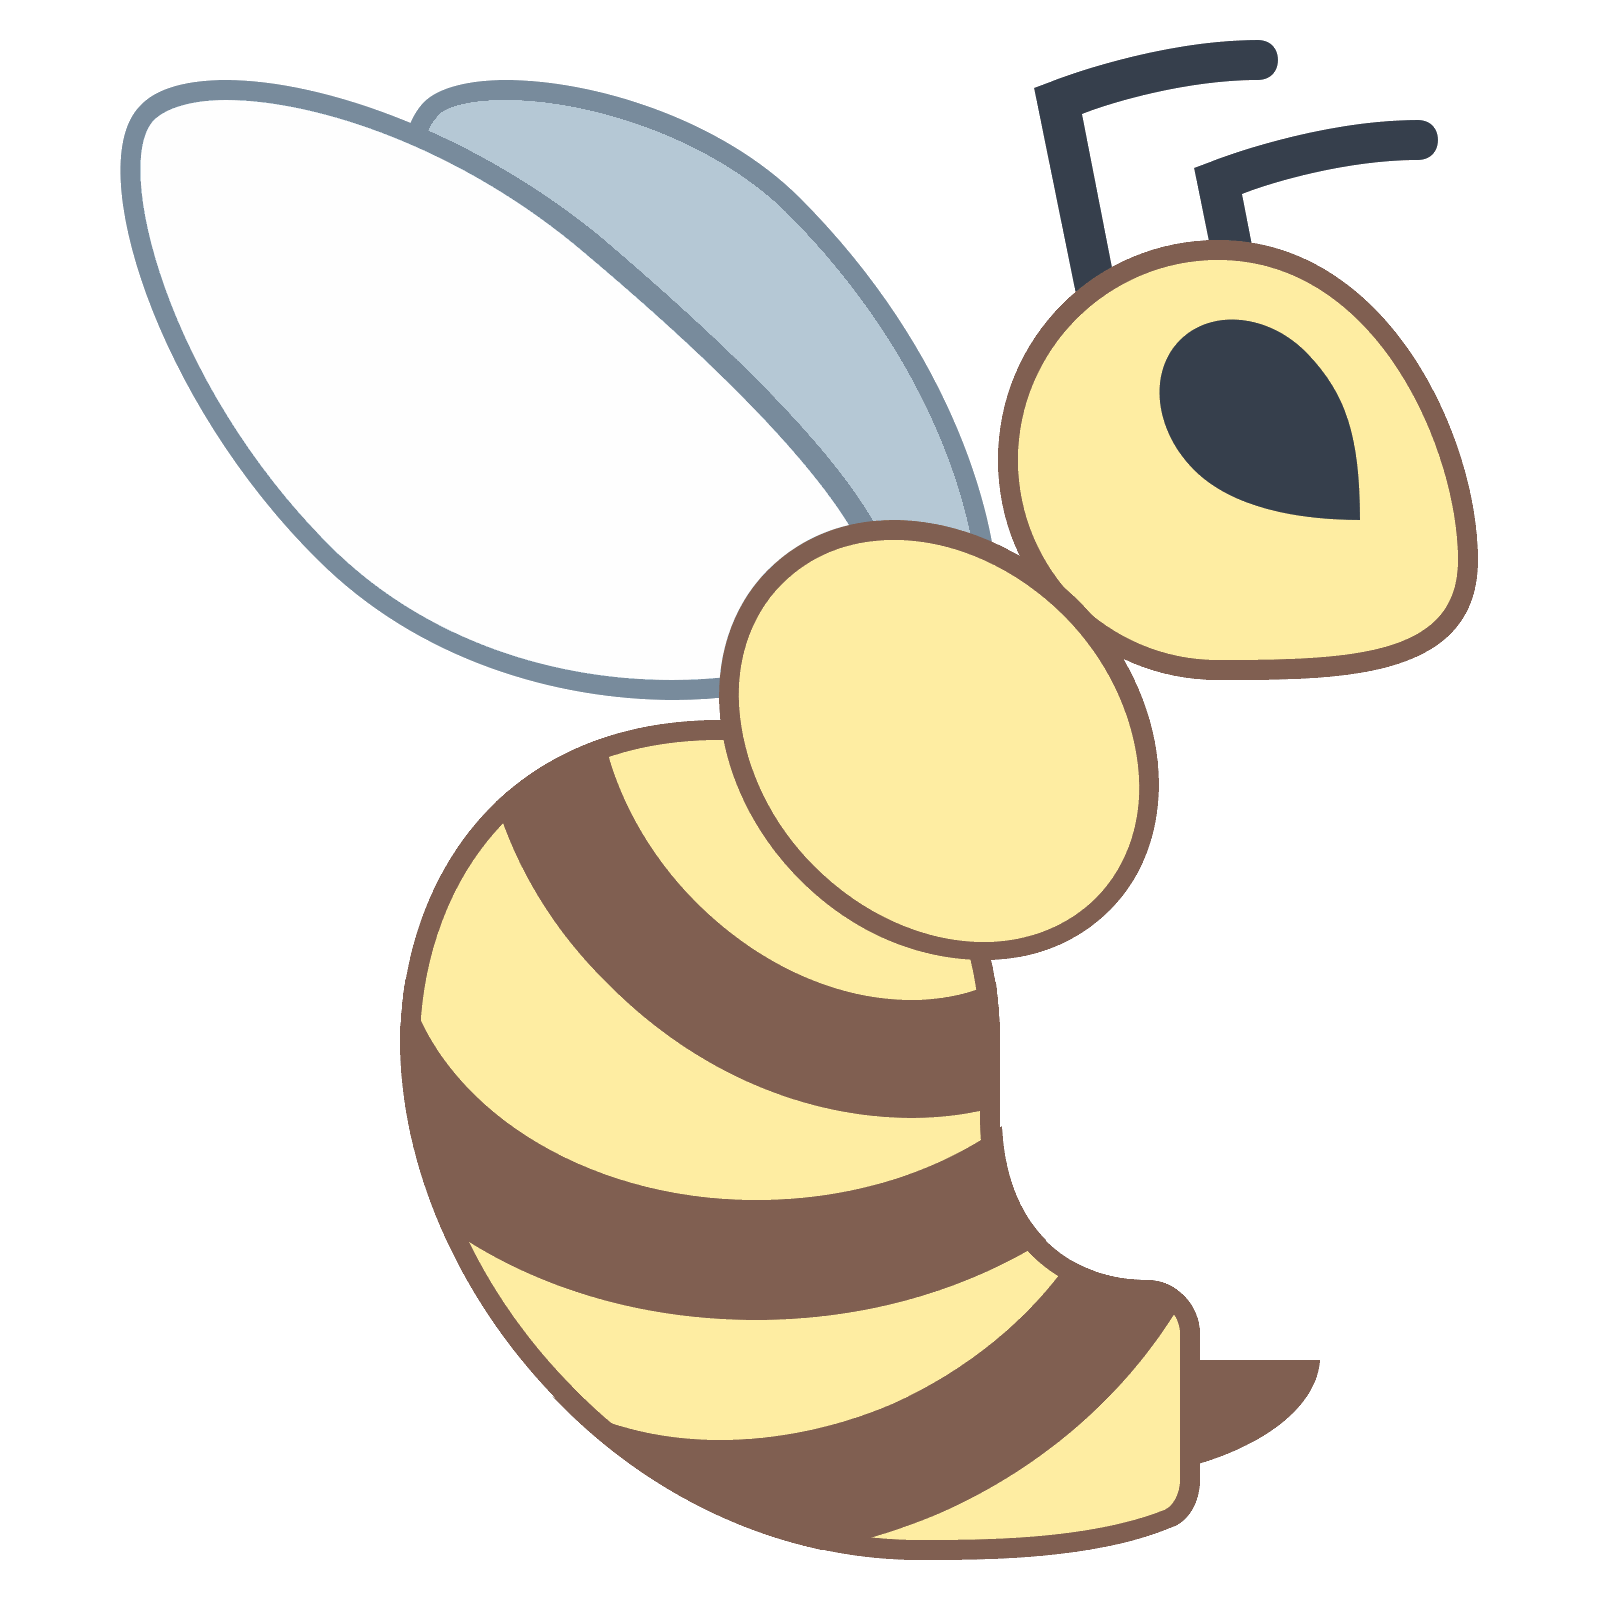 Wasp vector cartoon. Icon free download png